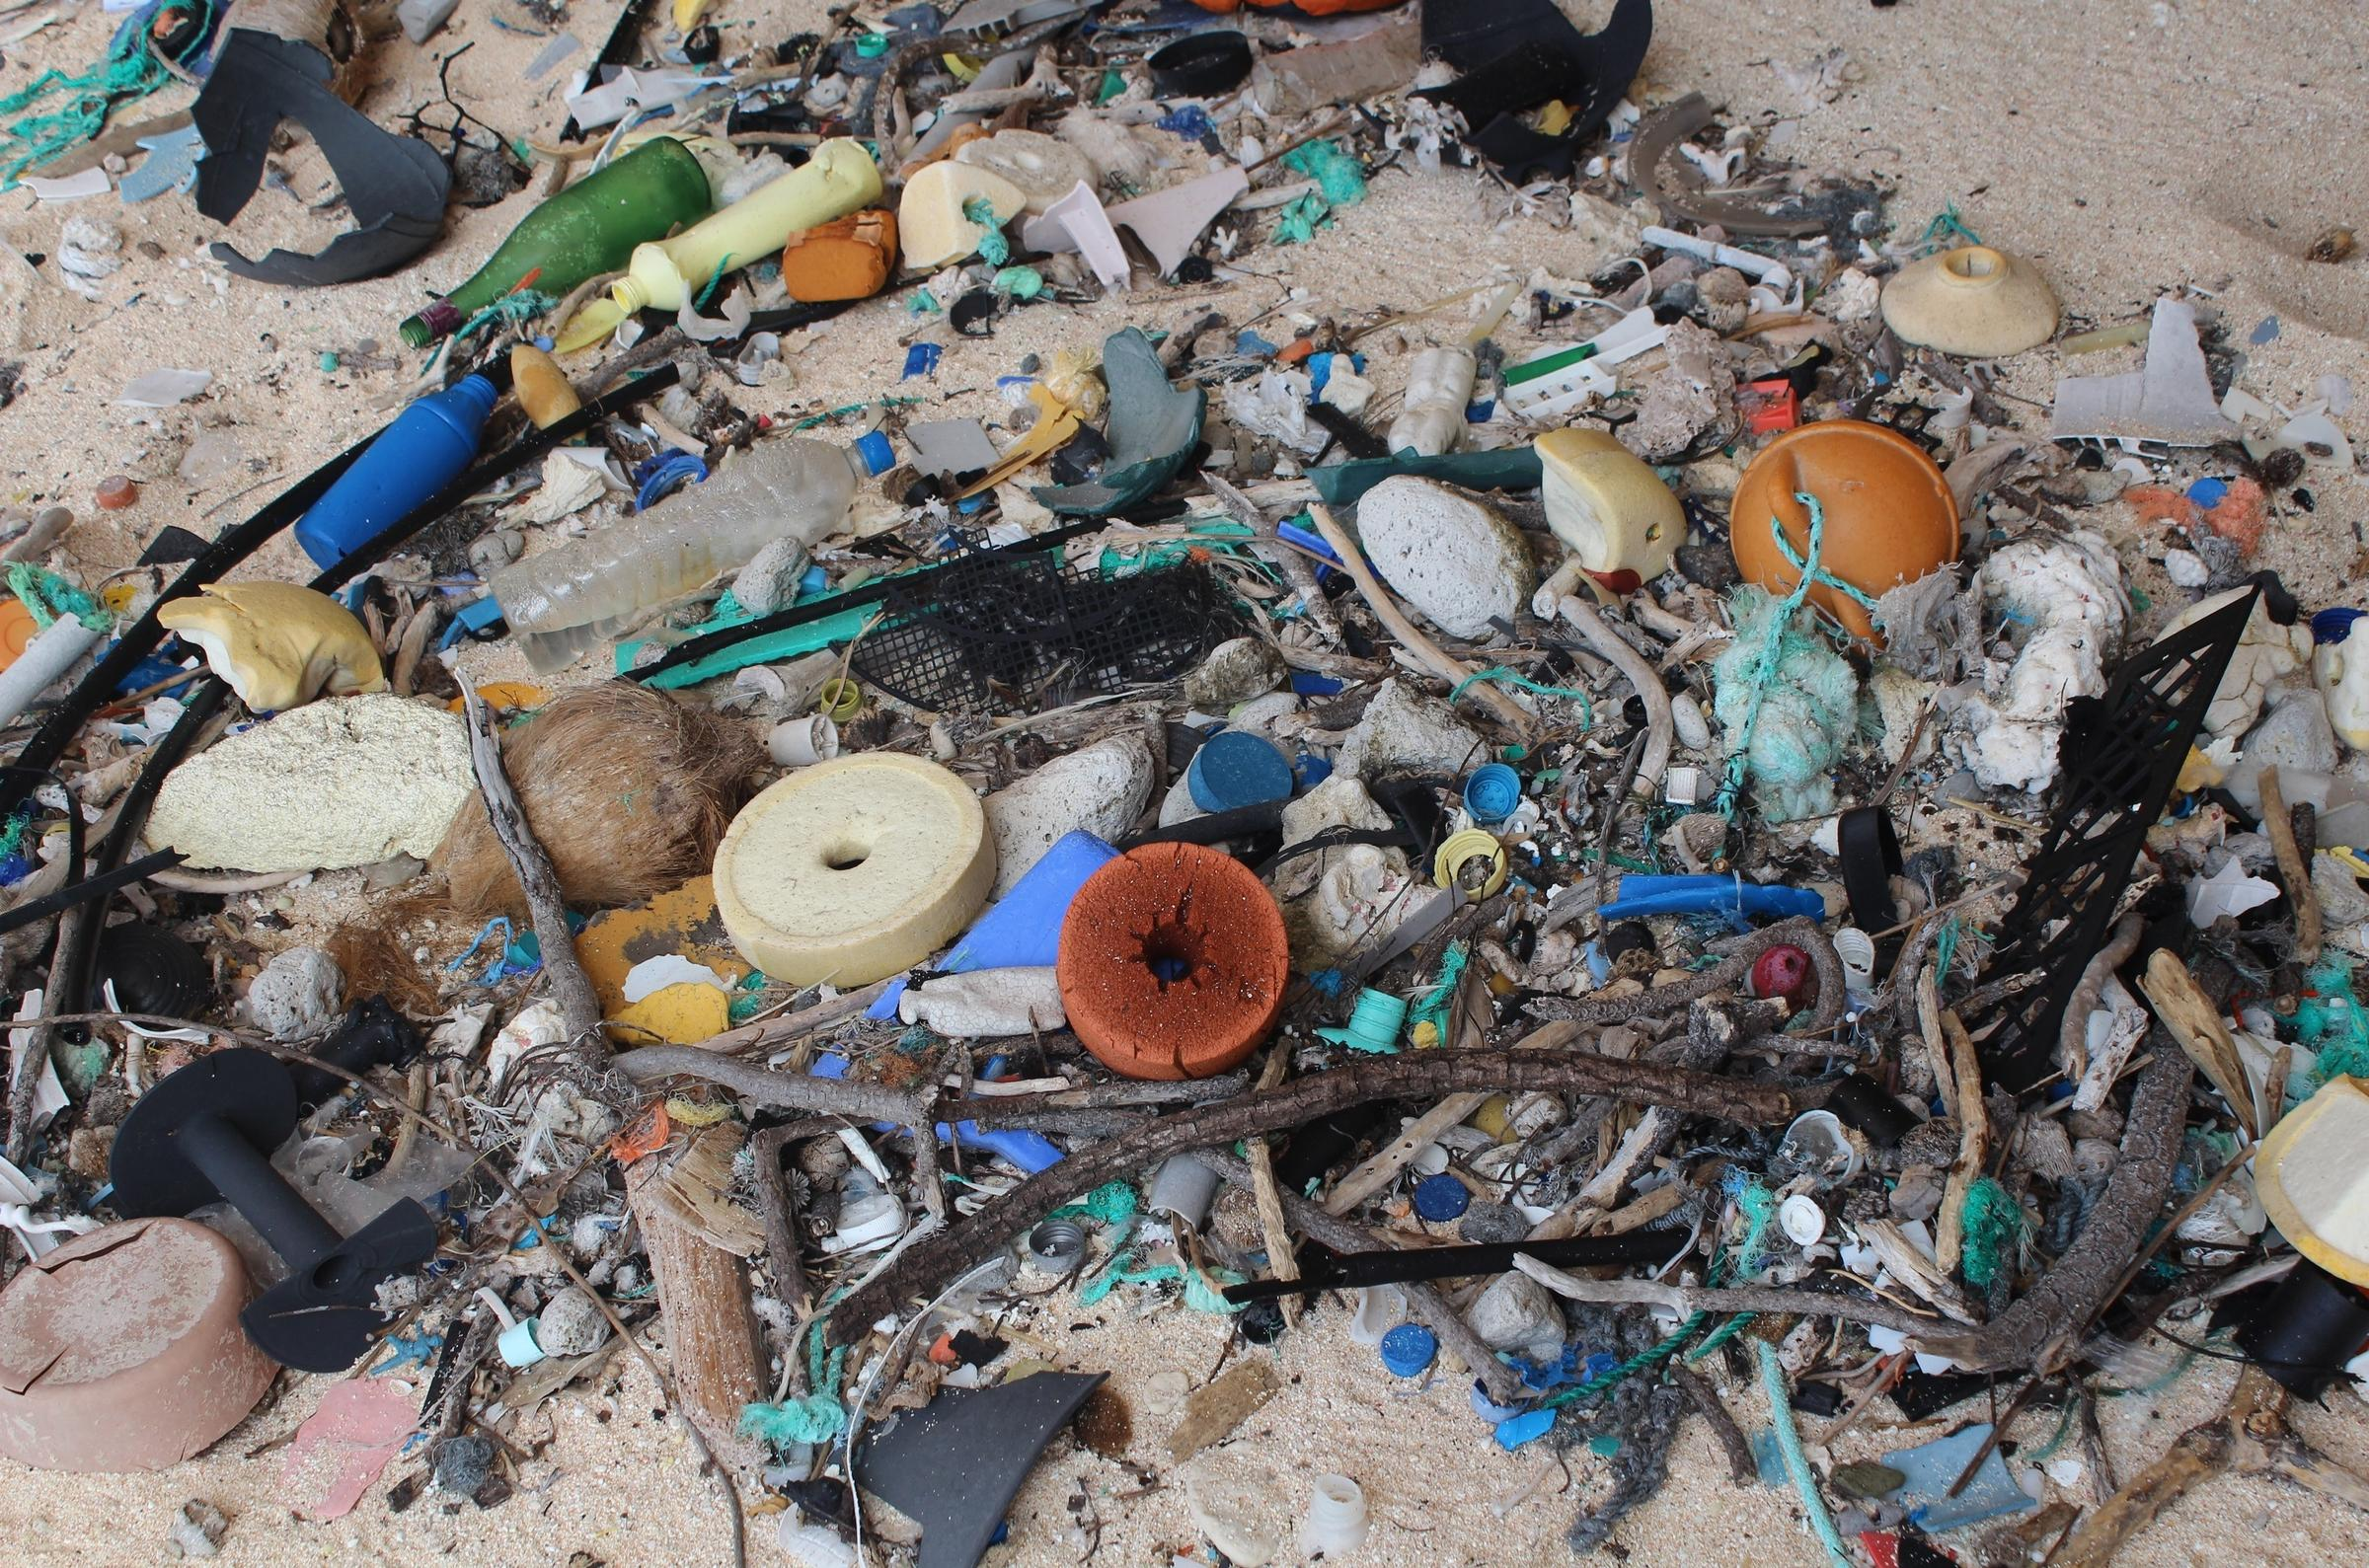 Current assures remote South Pacific atoll of highest accumulation of plastic litter